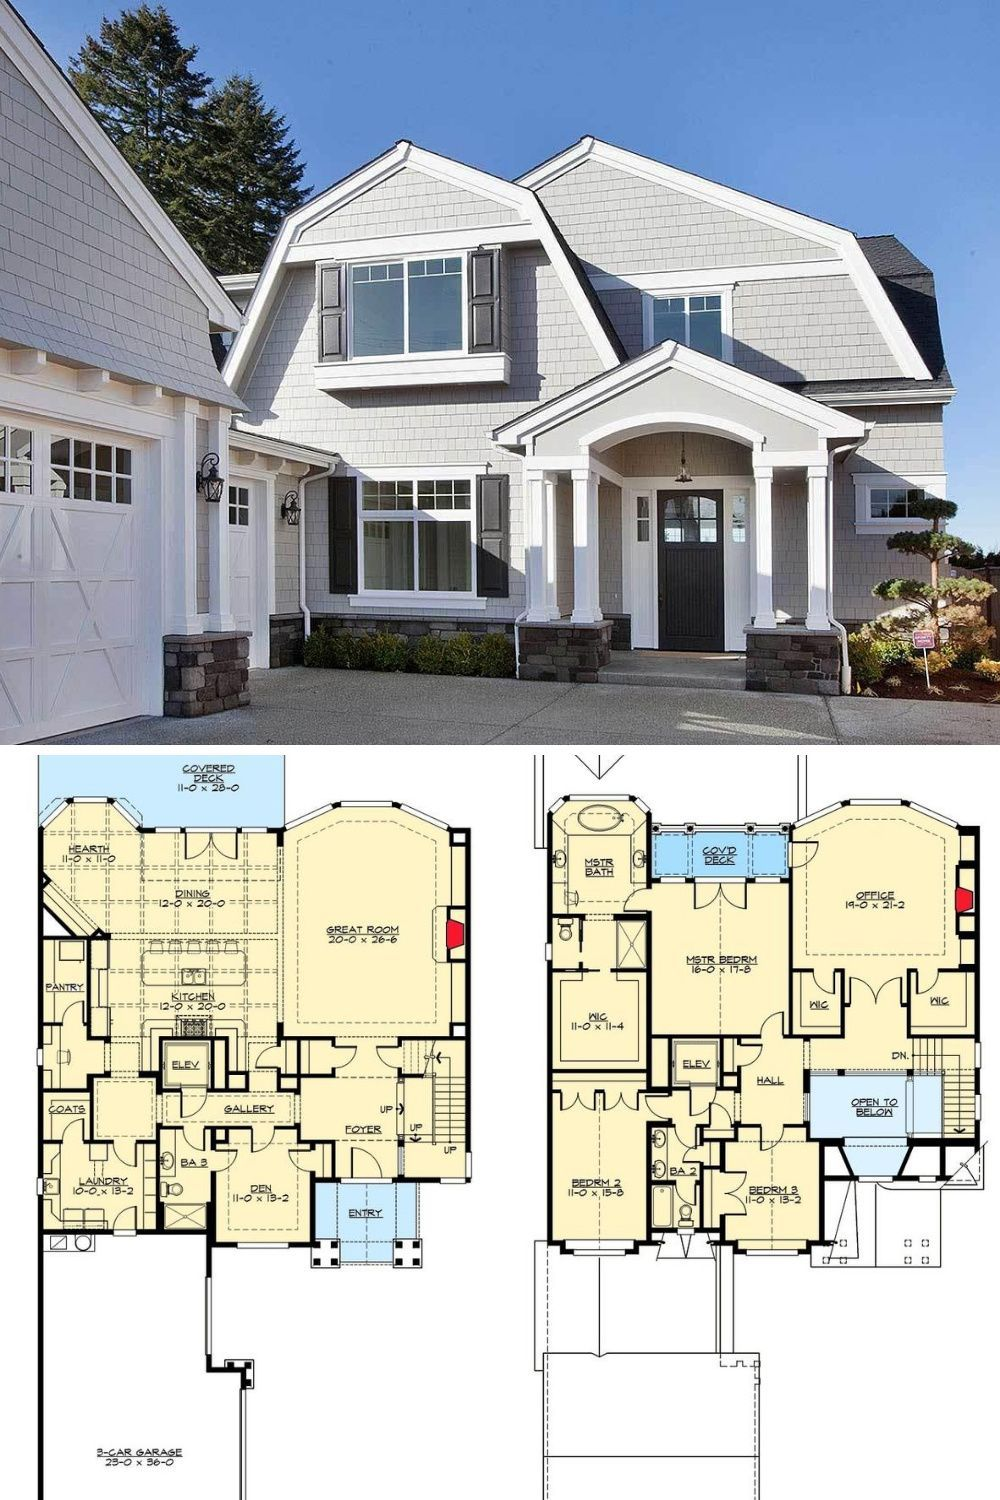 3 Bedroom Two Story Cape Cod Home With Gambrel Roofs And Open Floor Plan Floor Plan Beach House Plans Cape Cod House Plans Gambrel Roof